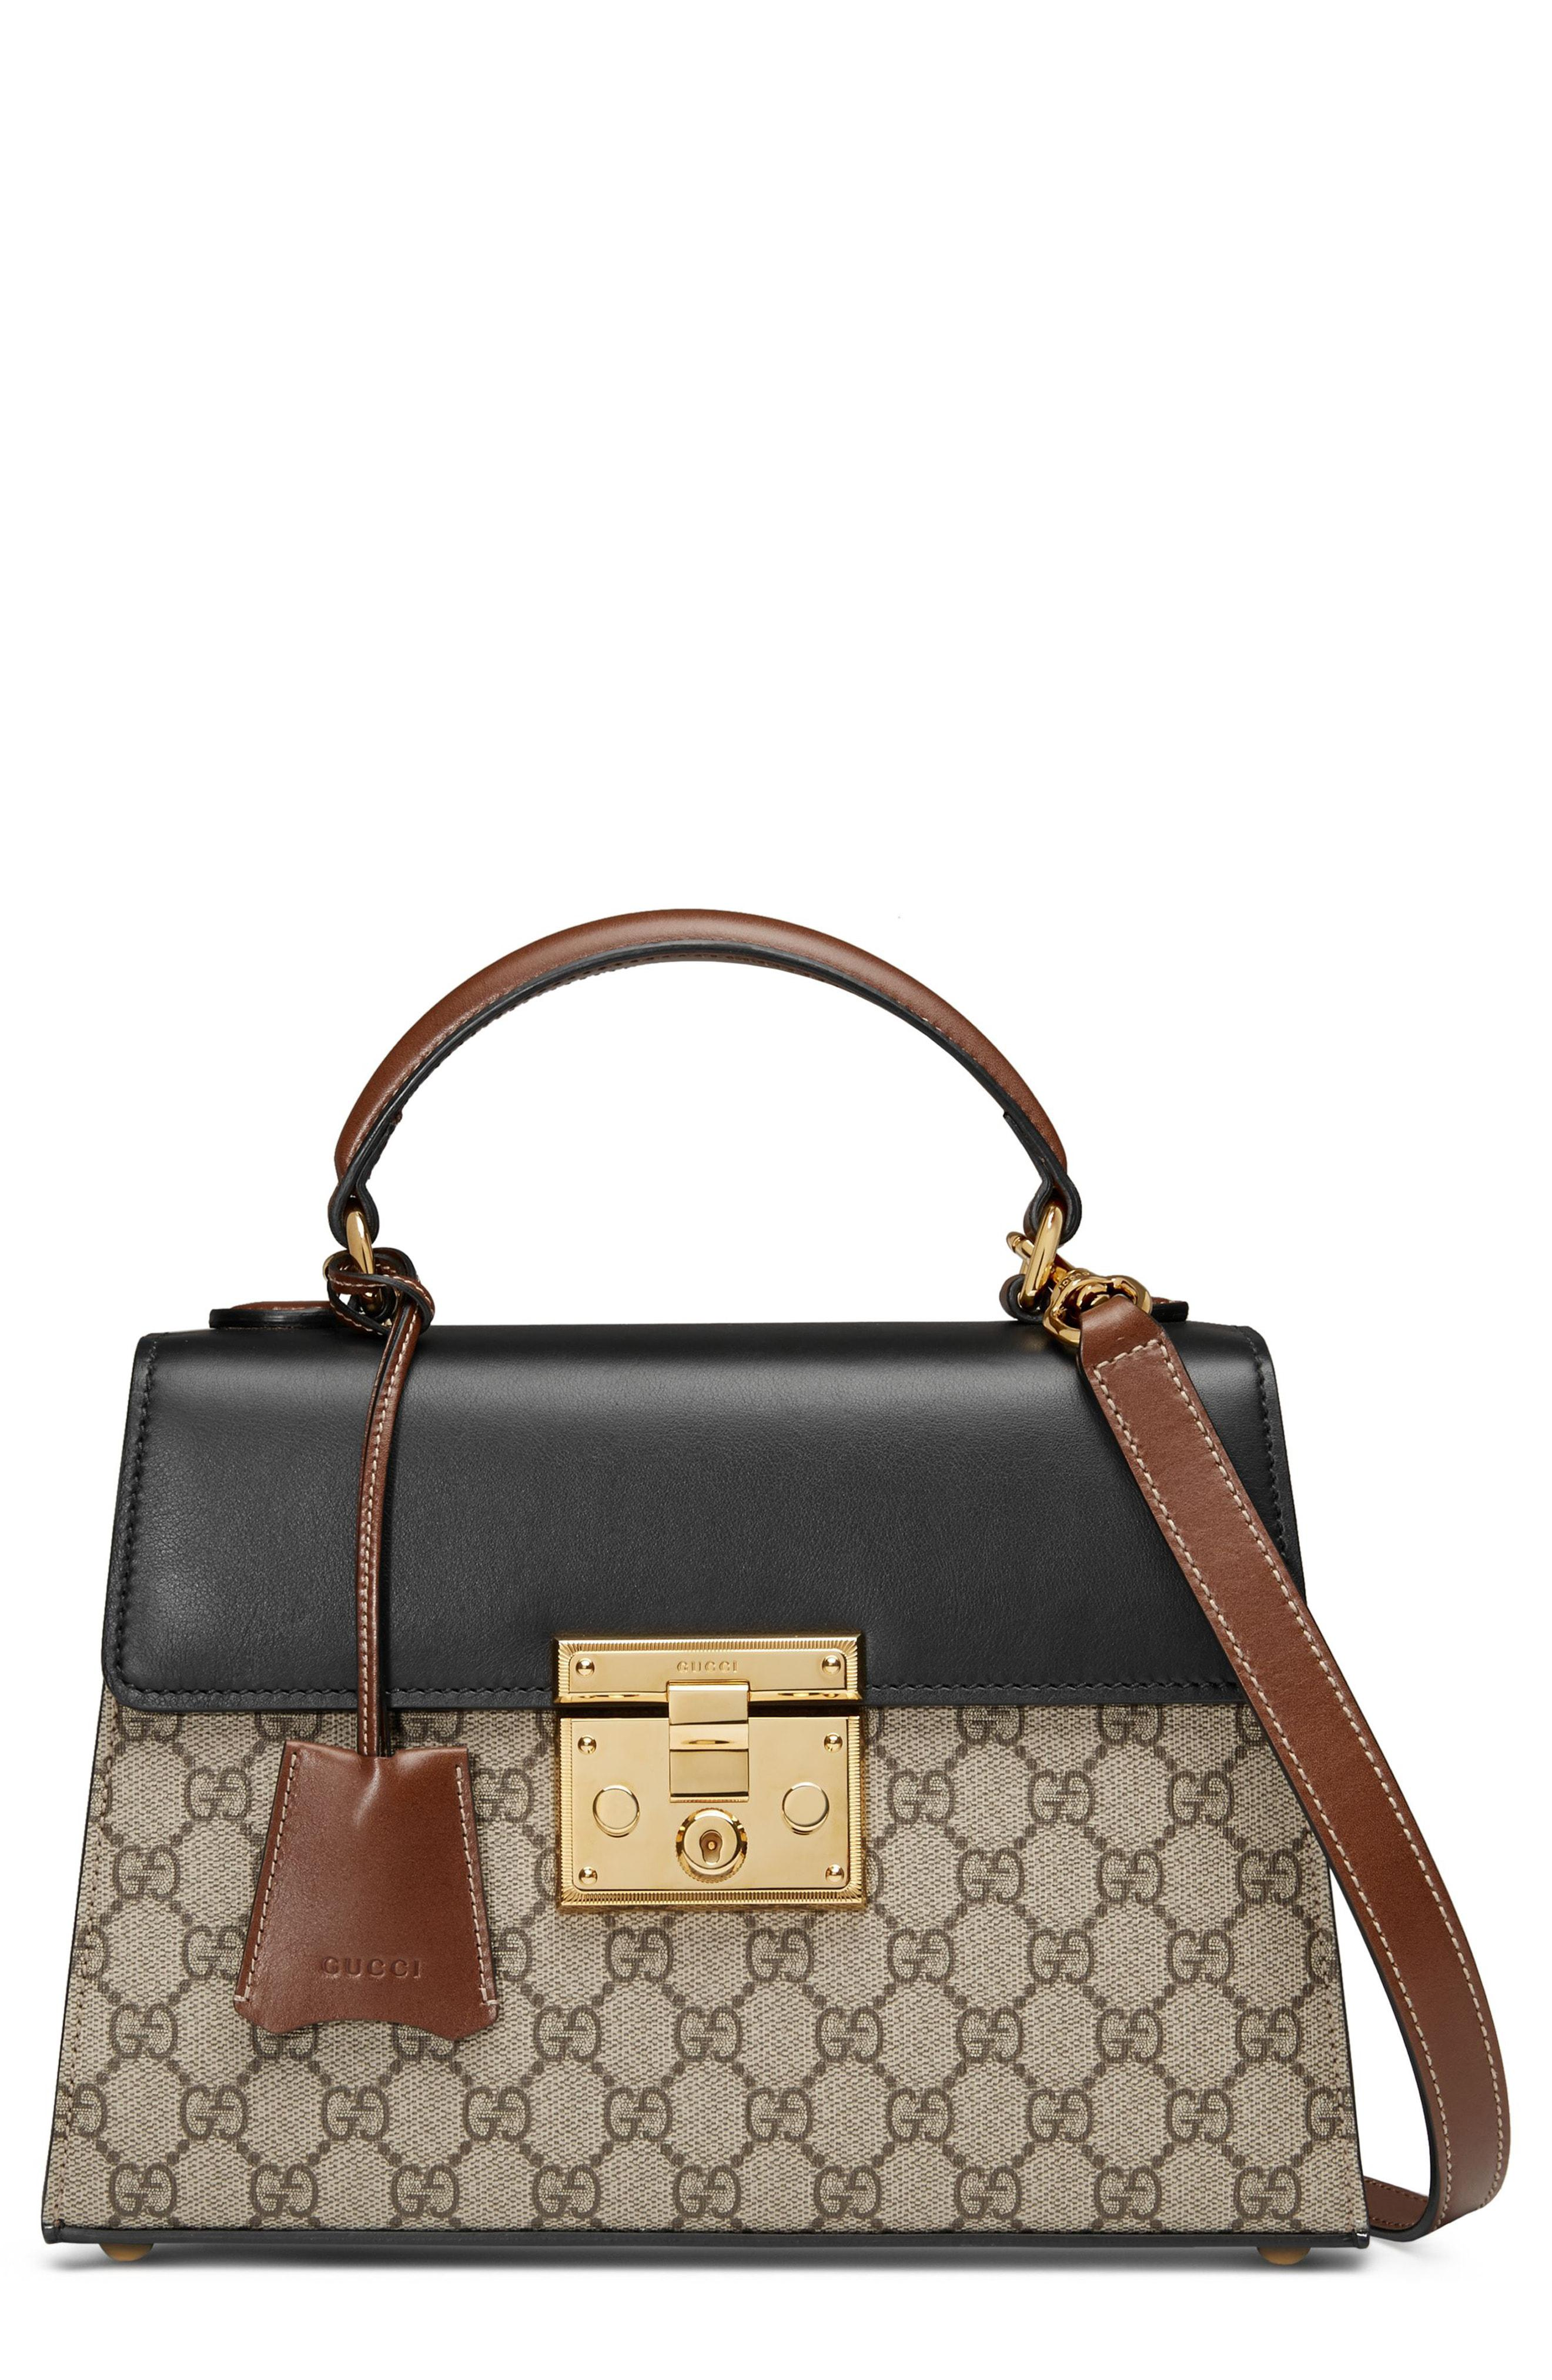 60254104ad0 Gucci - Black Small Padlock Gg Supreme Canvas   Leather Top Handle Satchel  - - Lyst. View fullscreen